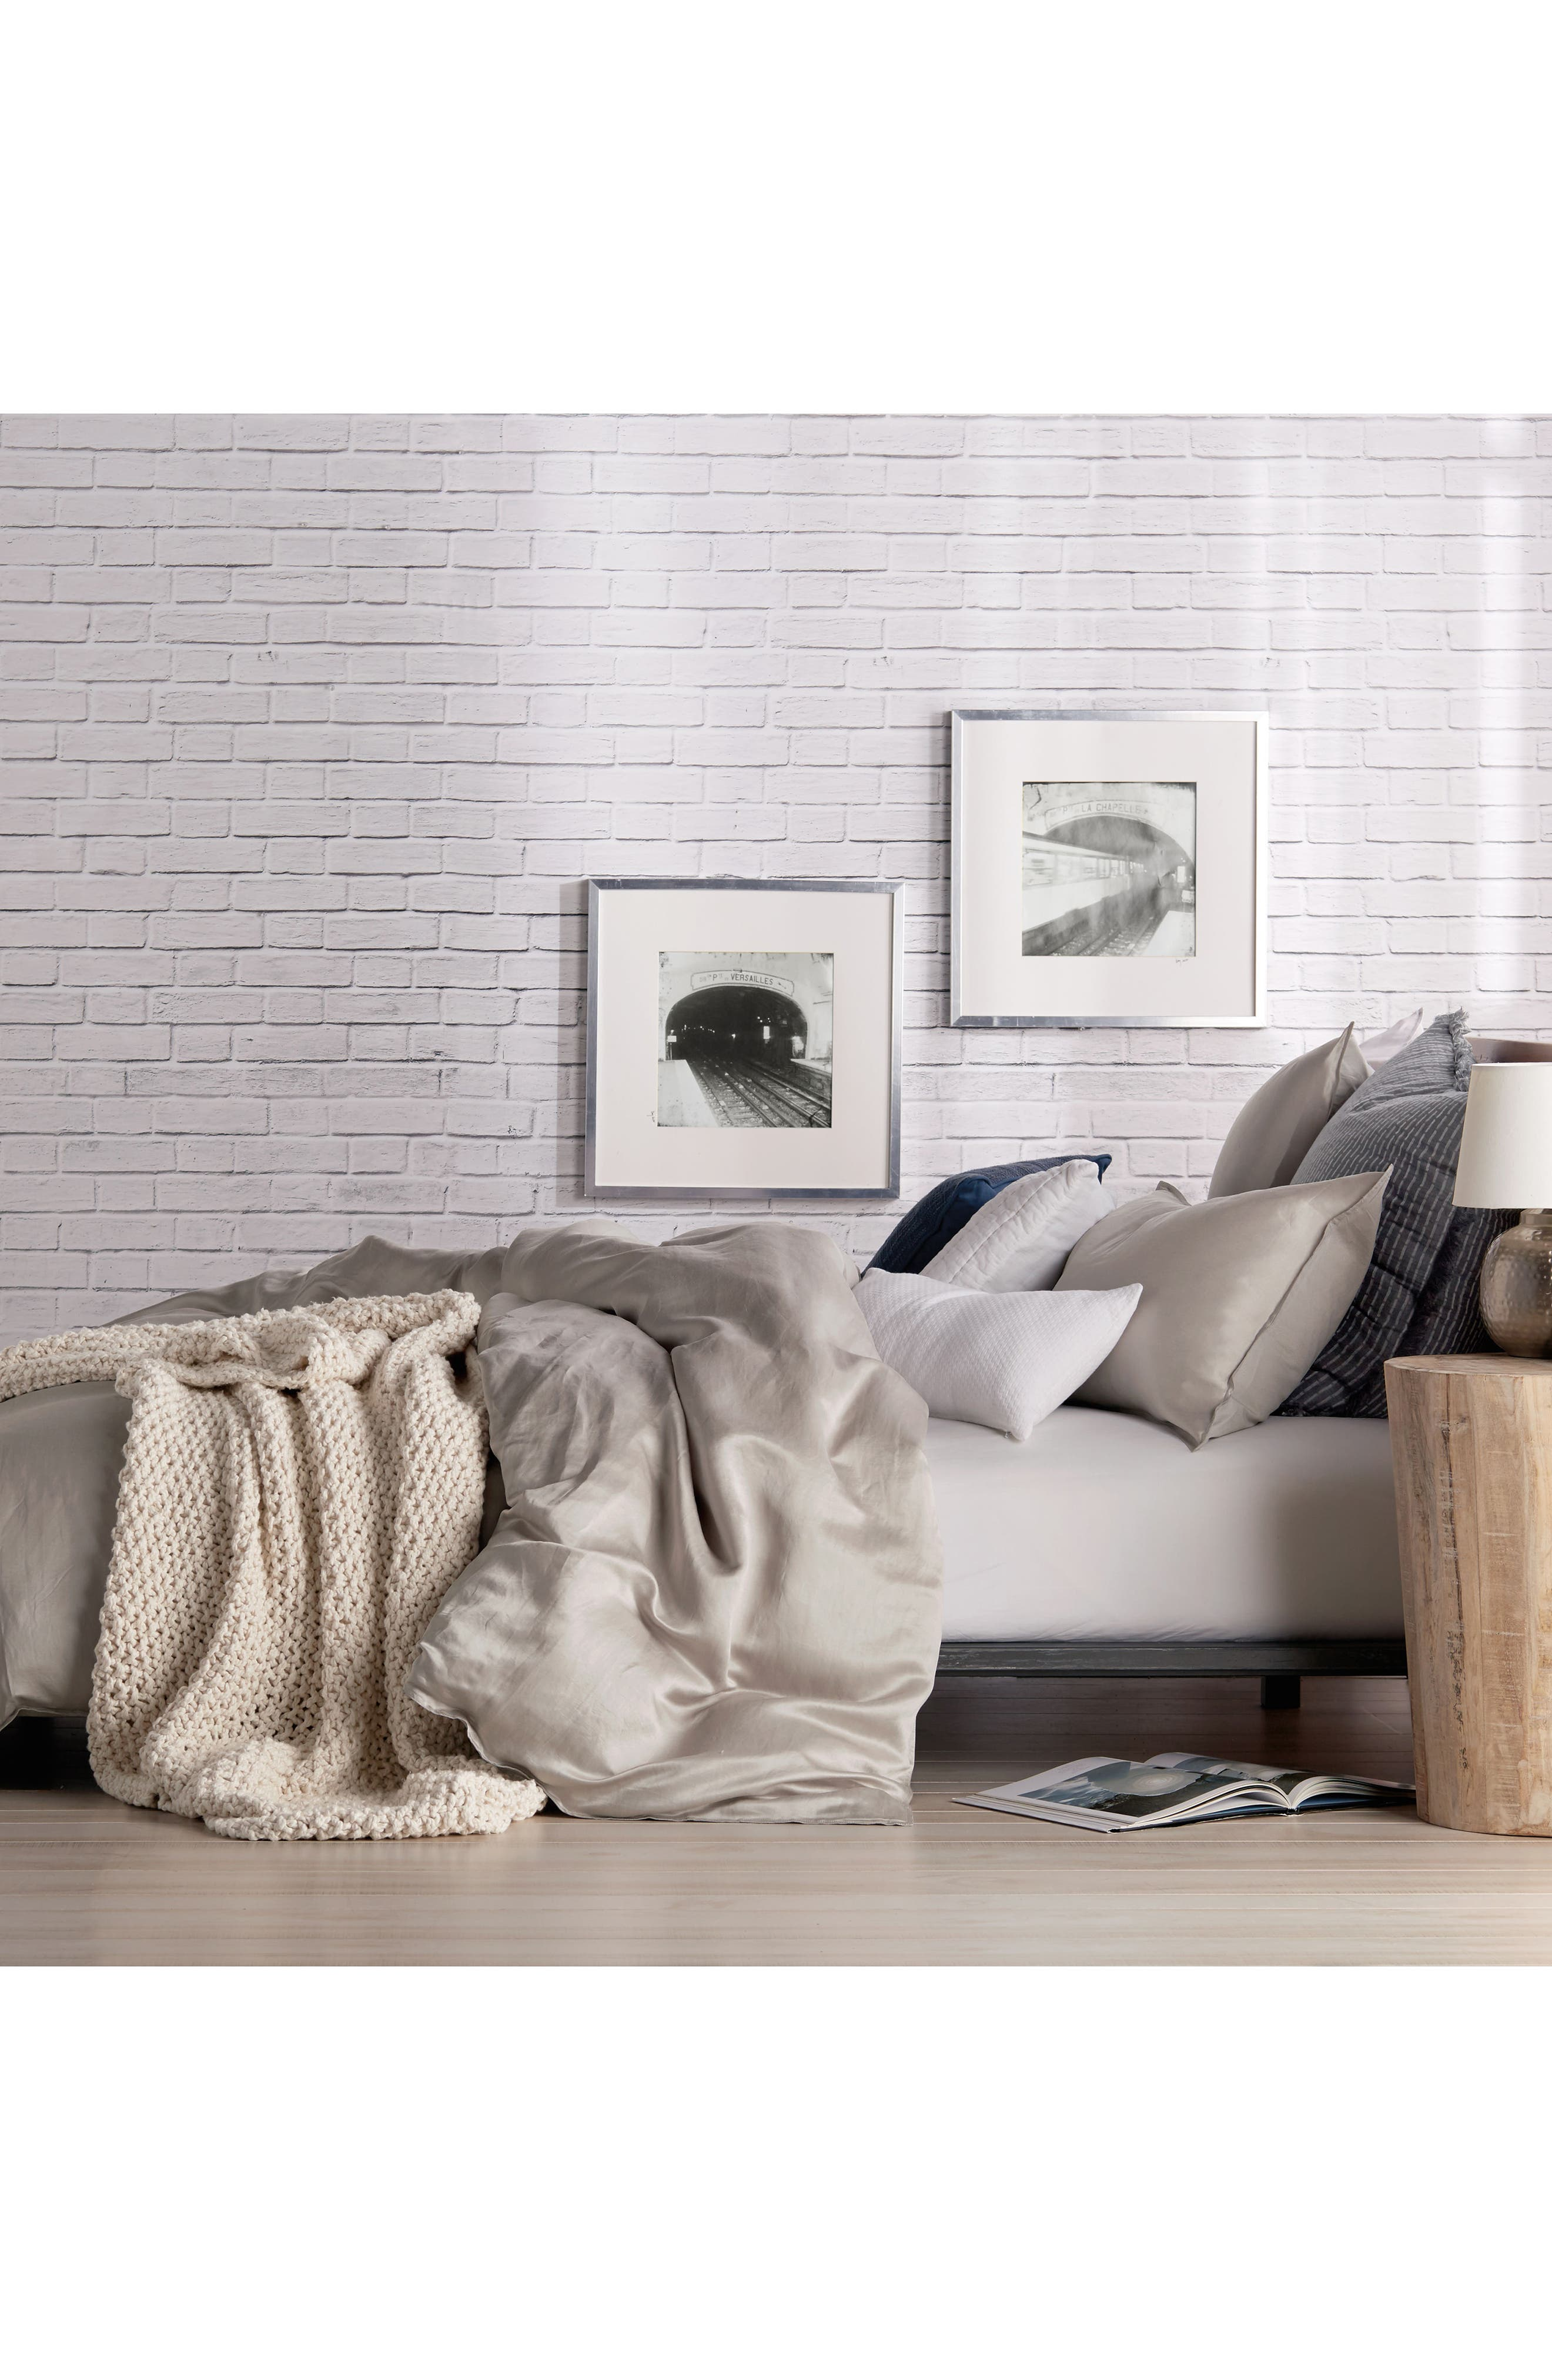 Alternate Image 1 Selected - DKNY Pure Silky Duvet Cover